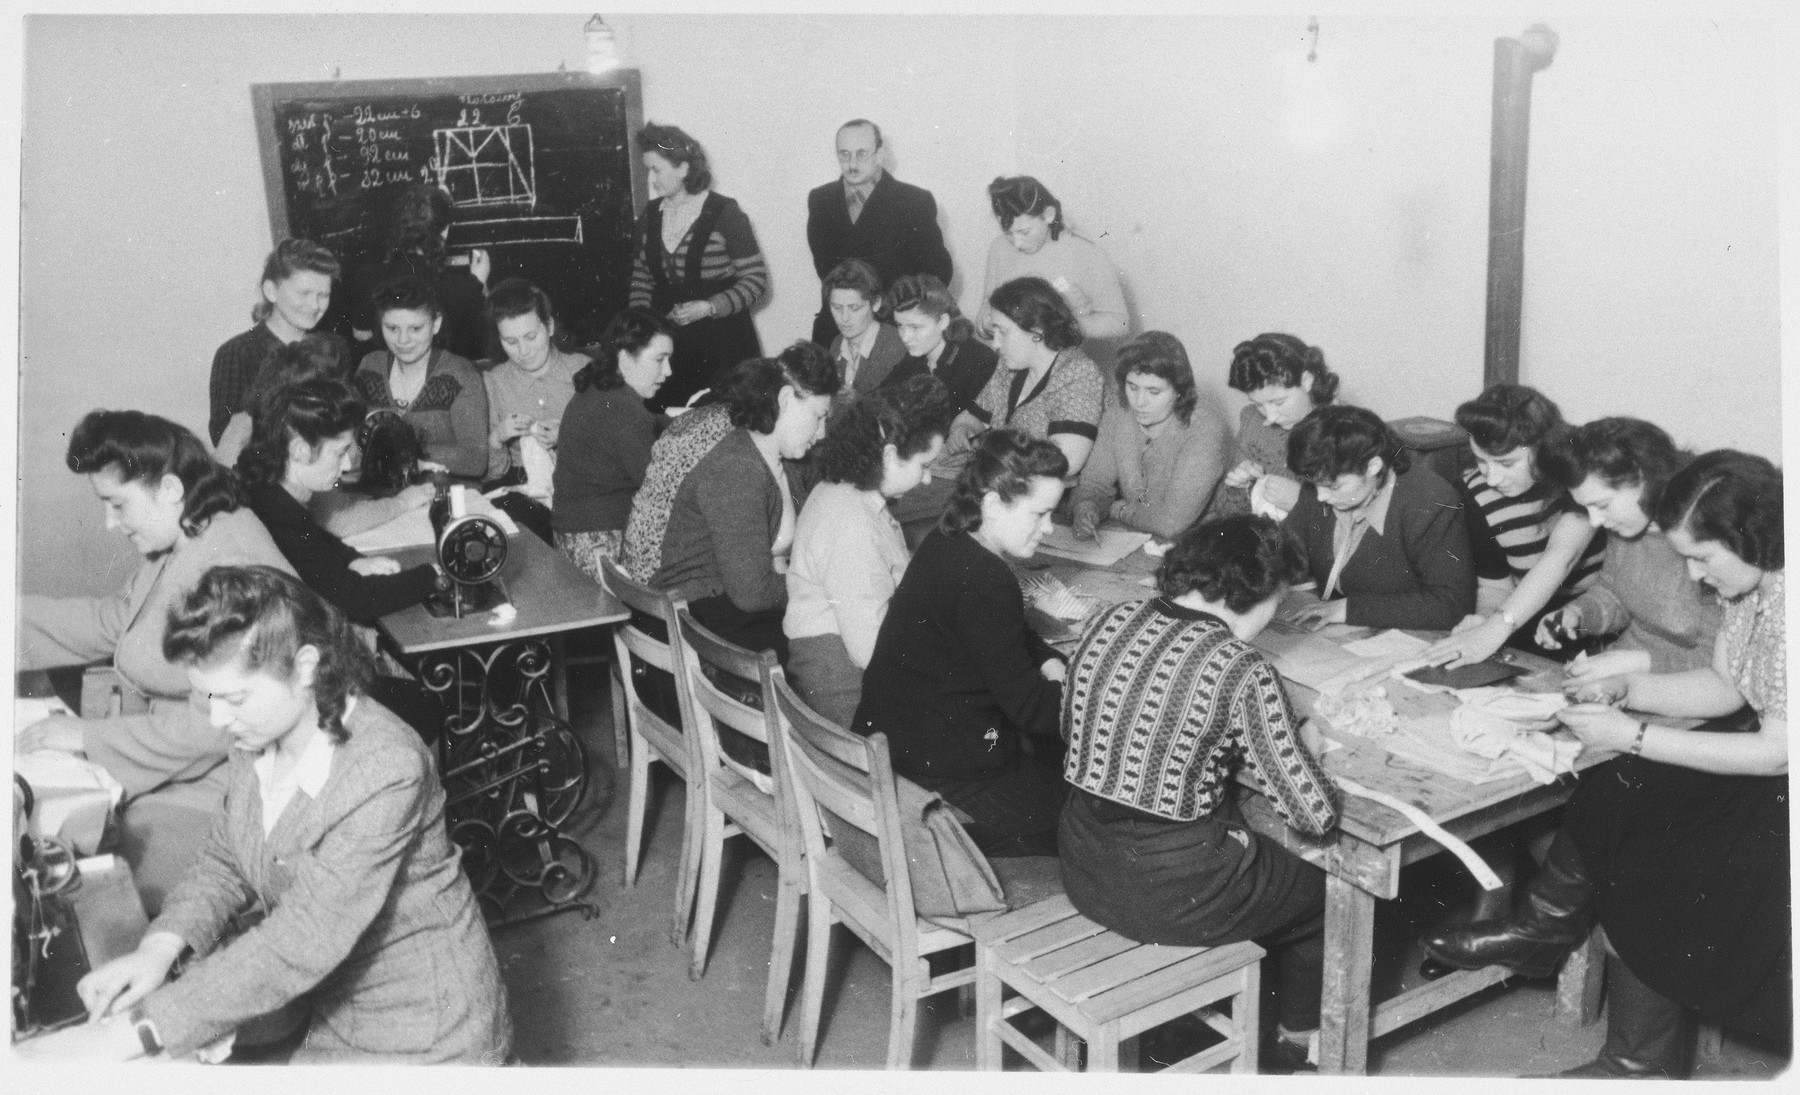 Women study pattern-making in a sewing class in the ORT vocational school at Zeilsheim displaced persons' camp.